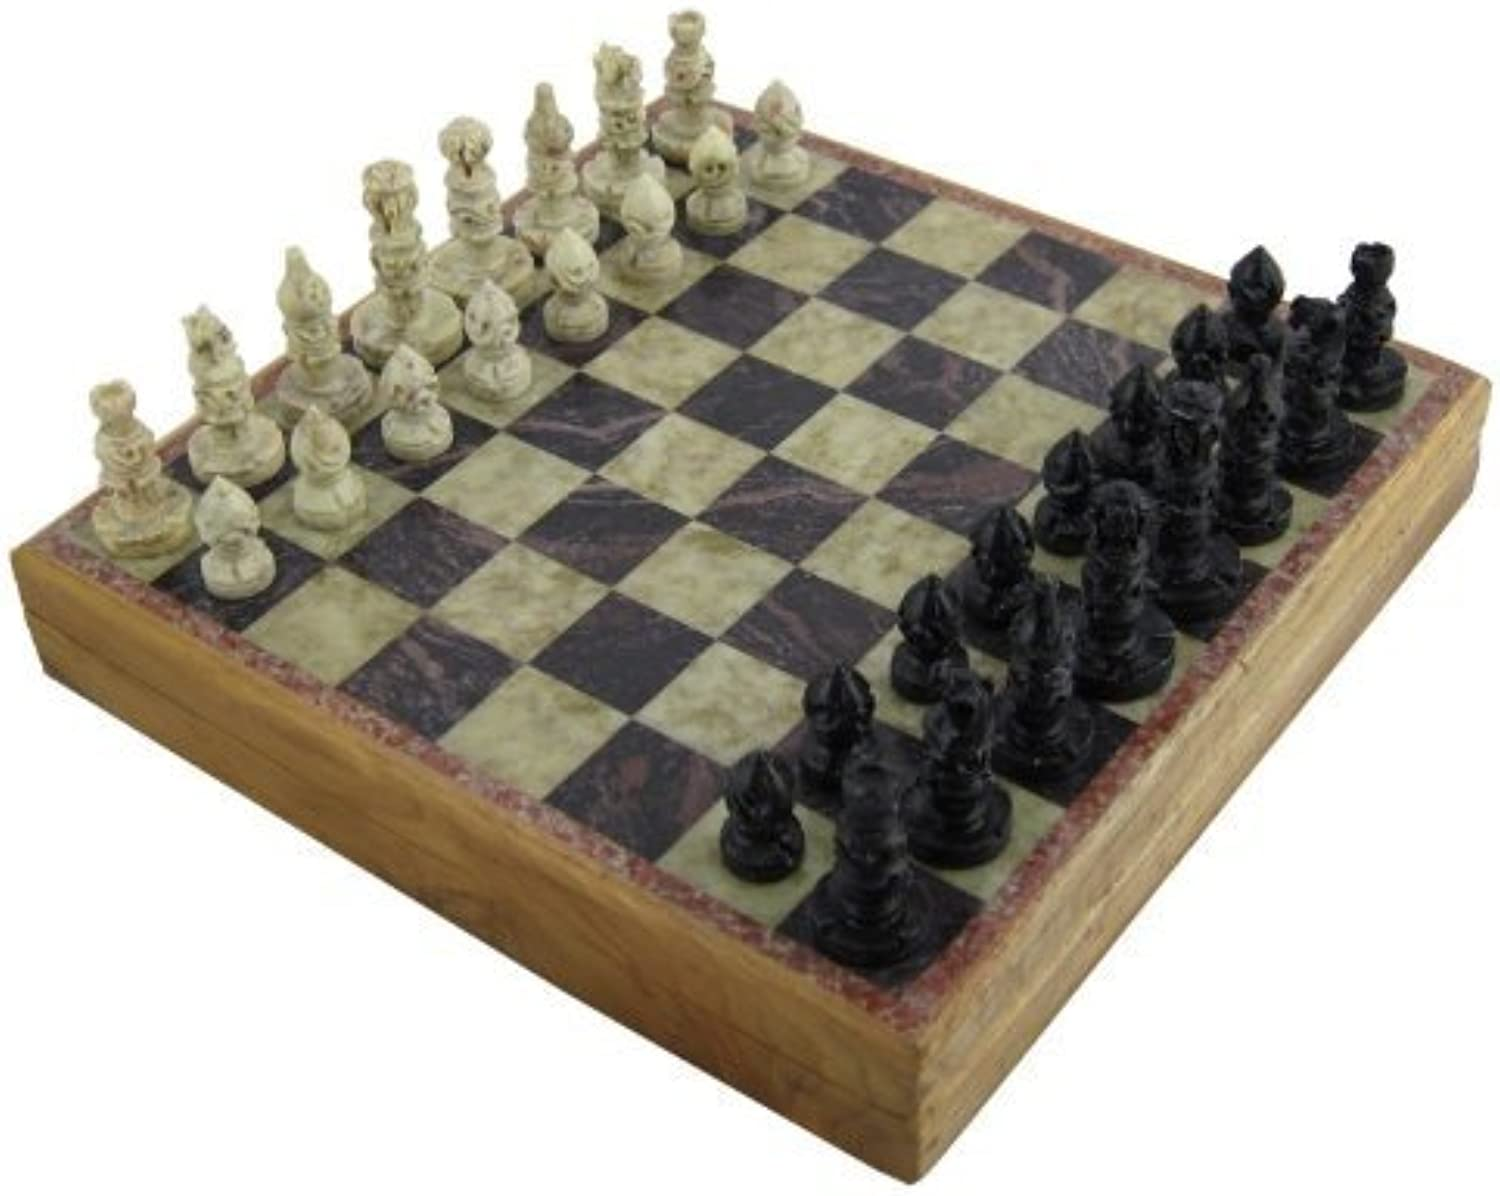 Strategy Board Games for Adults Unique Chess Sets and Board 10 Inches X 10 Inches by RoyaltyRoute